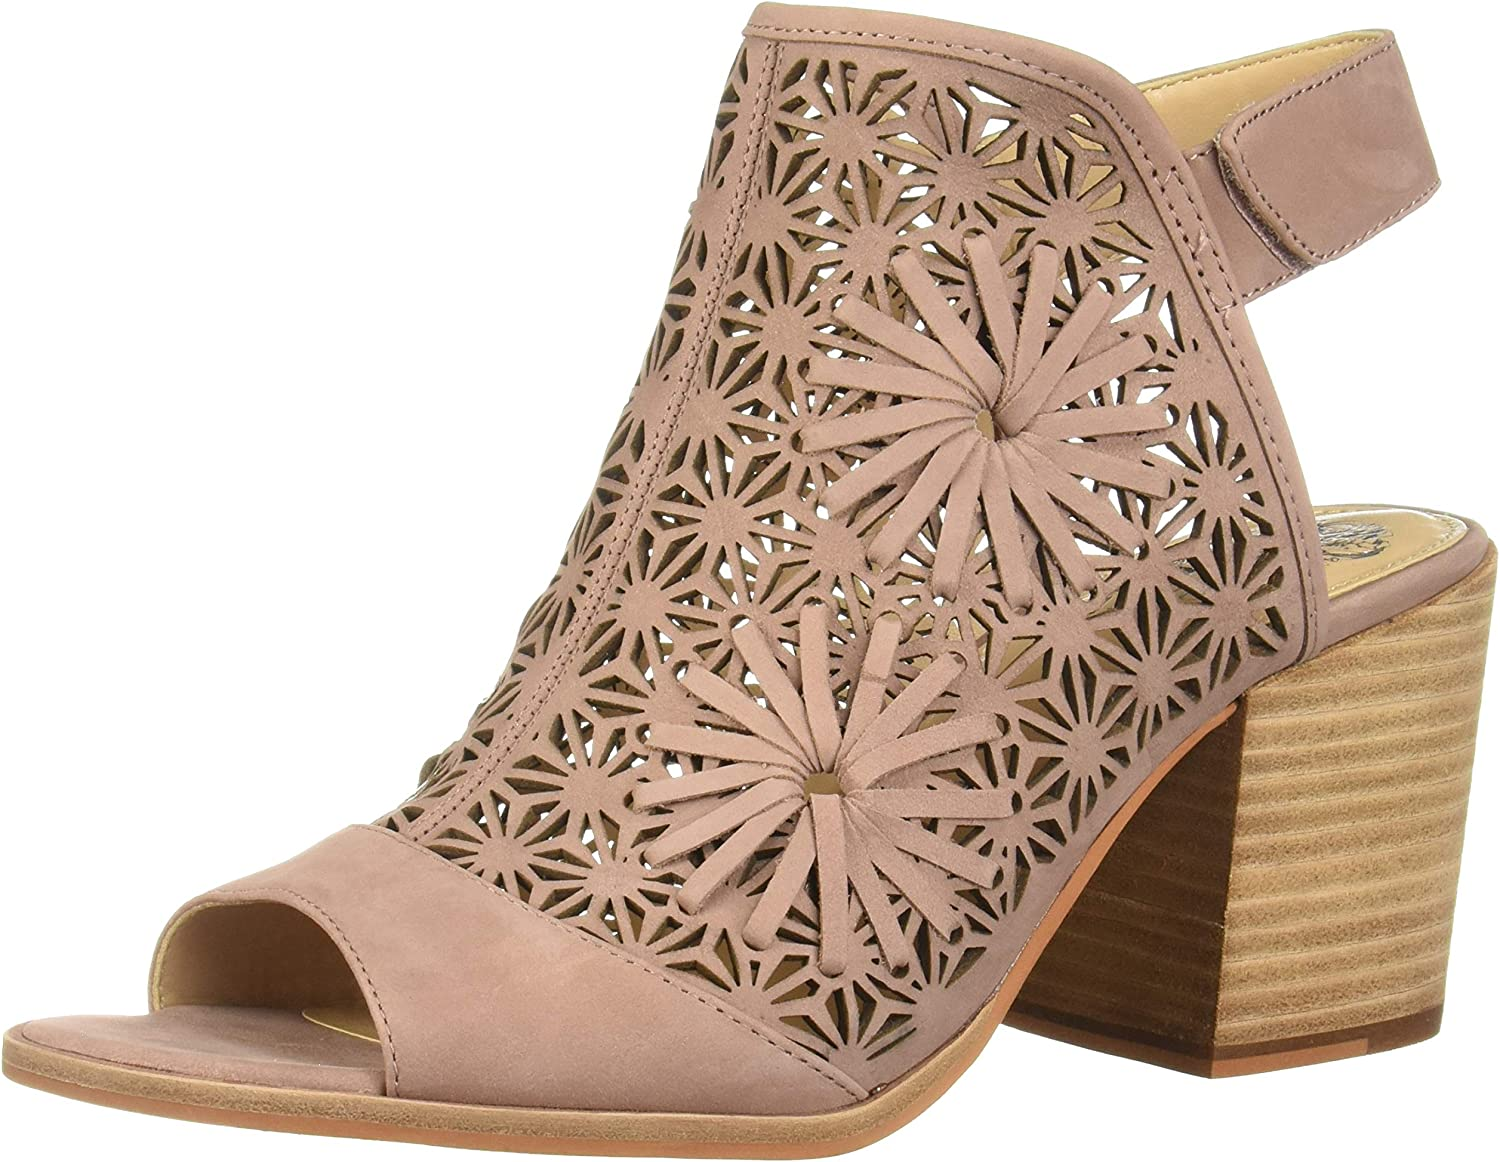 Vince Low price Camuto Women's Leera Synthetic Ankle Toe Finally popular brand Strap Wedge Open